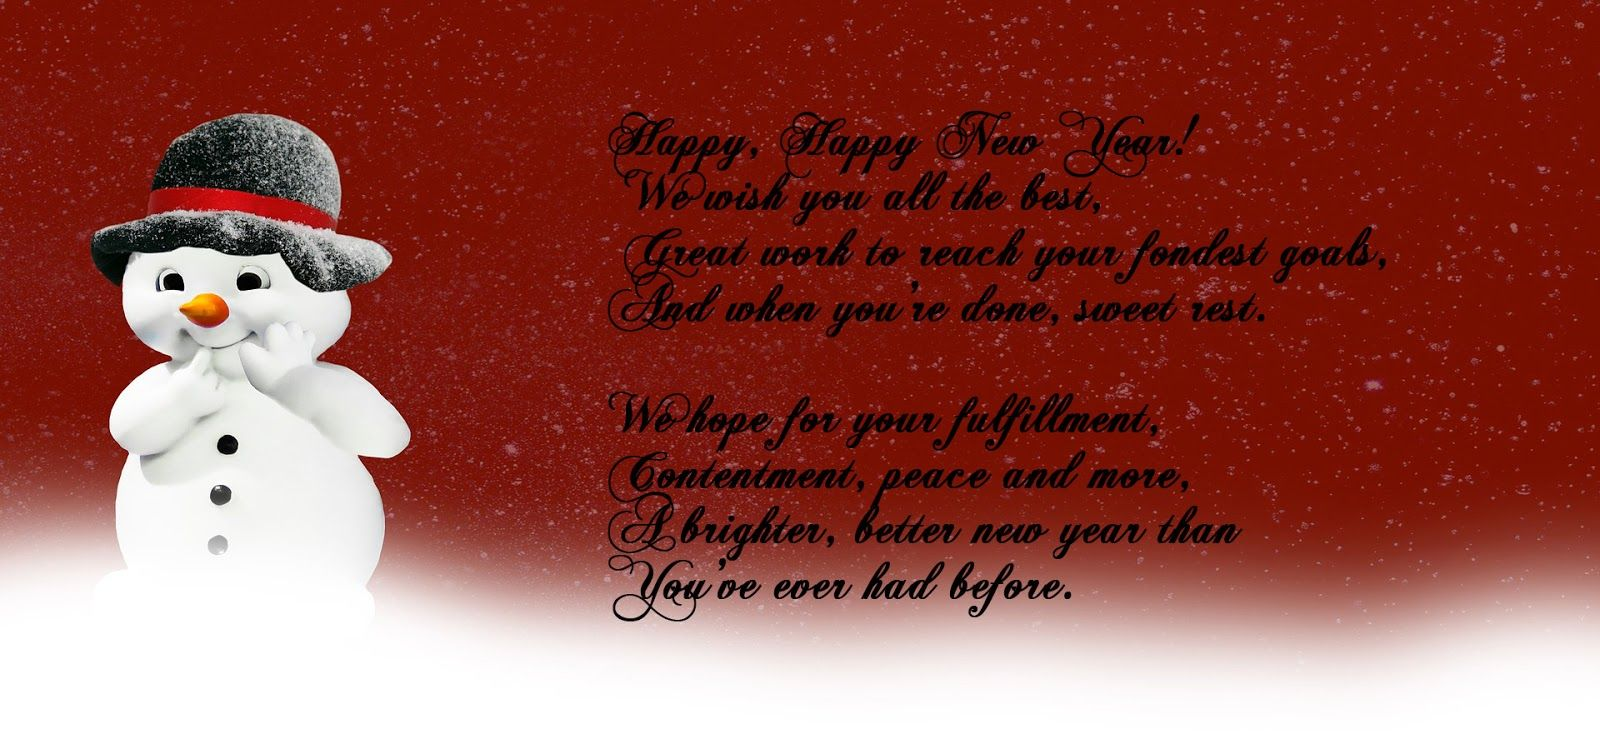 Happy new year 2017 poems in english happy new year 2017 happy new year 2017 poems in english kristyandbryce Images